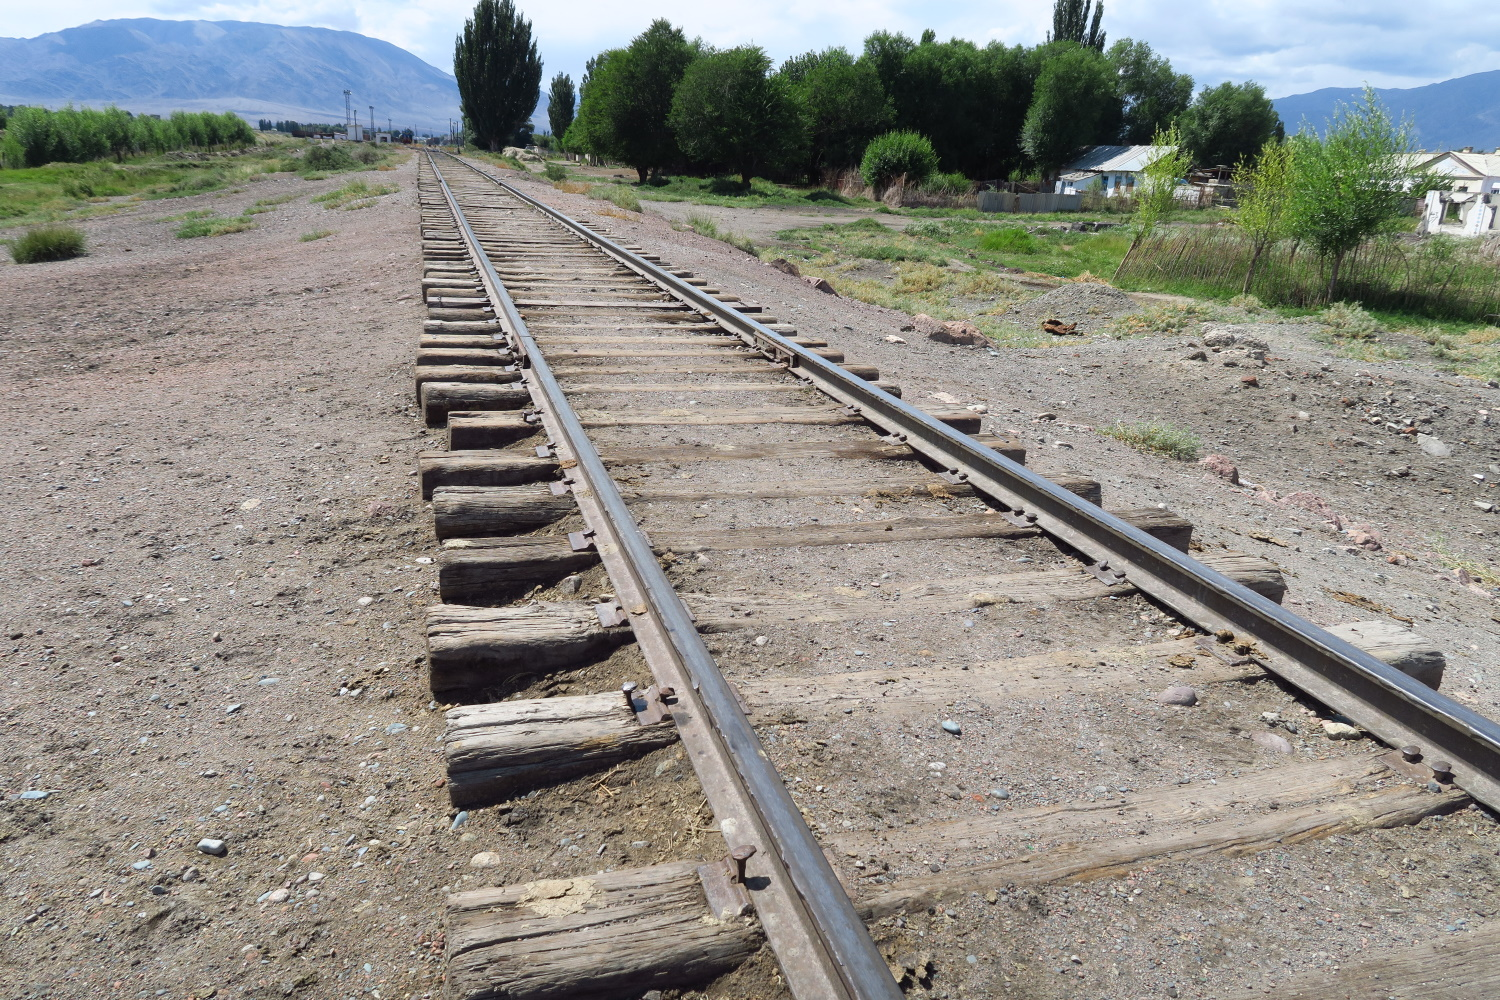 In this country the train tracks are wider than you are used to. The USSR uses wider tracks than the rest of us do.